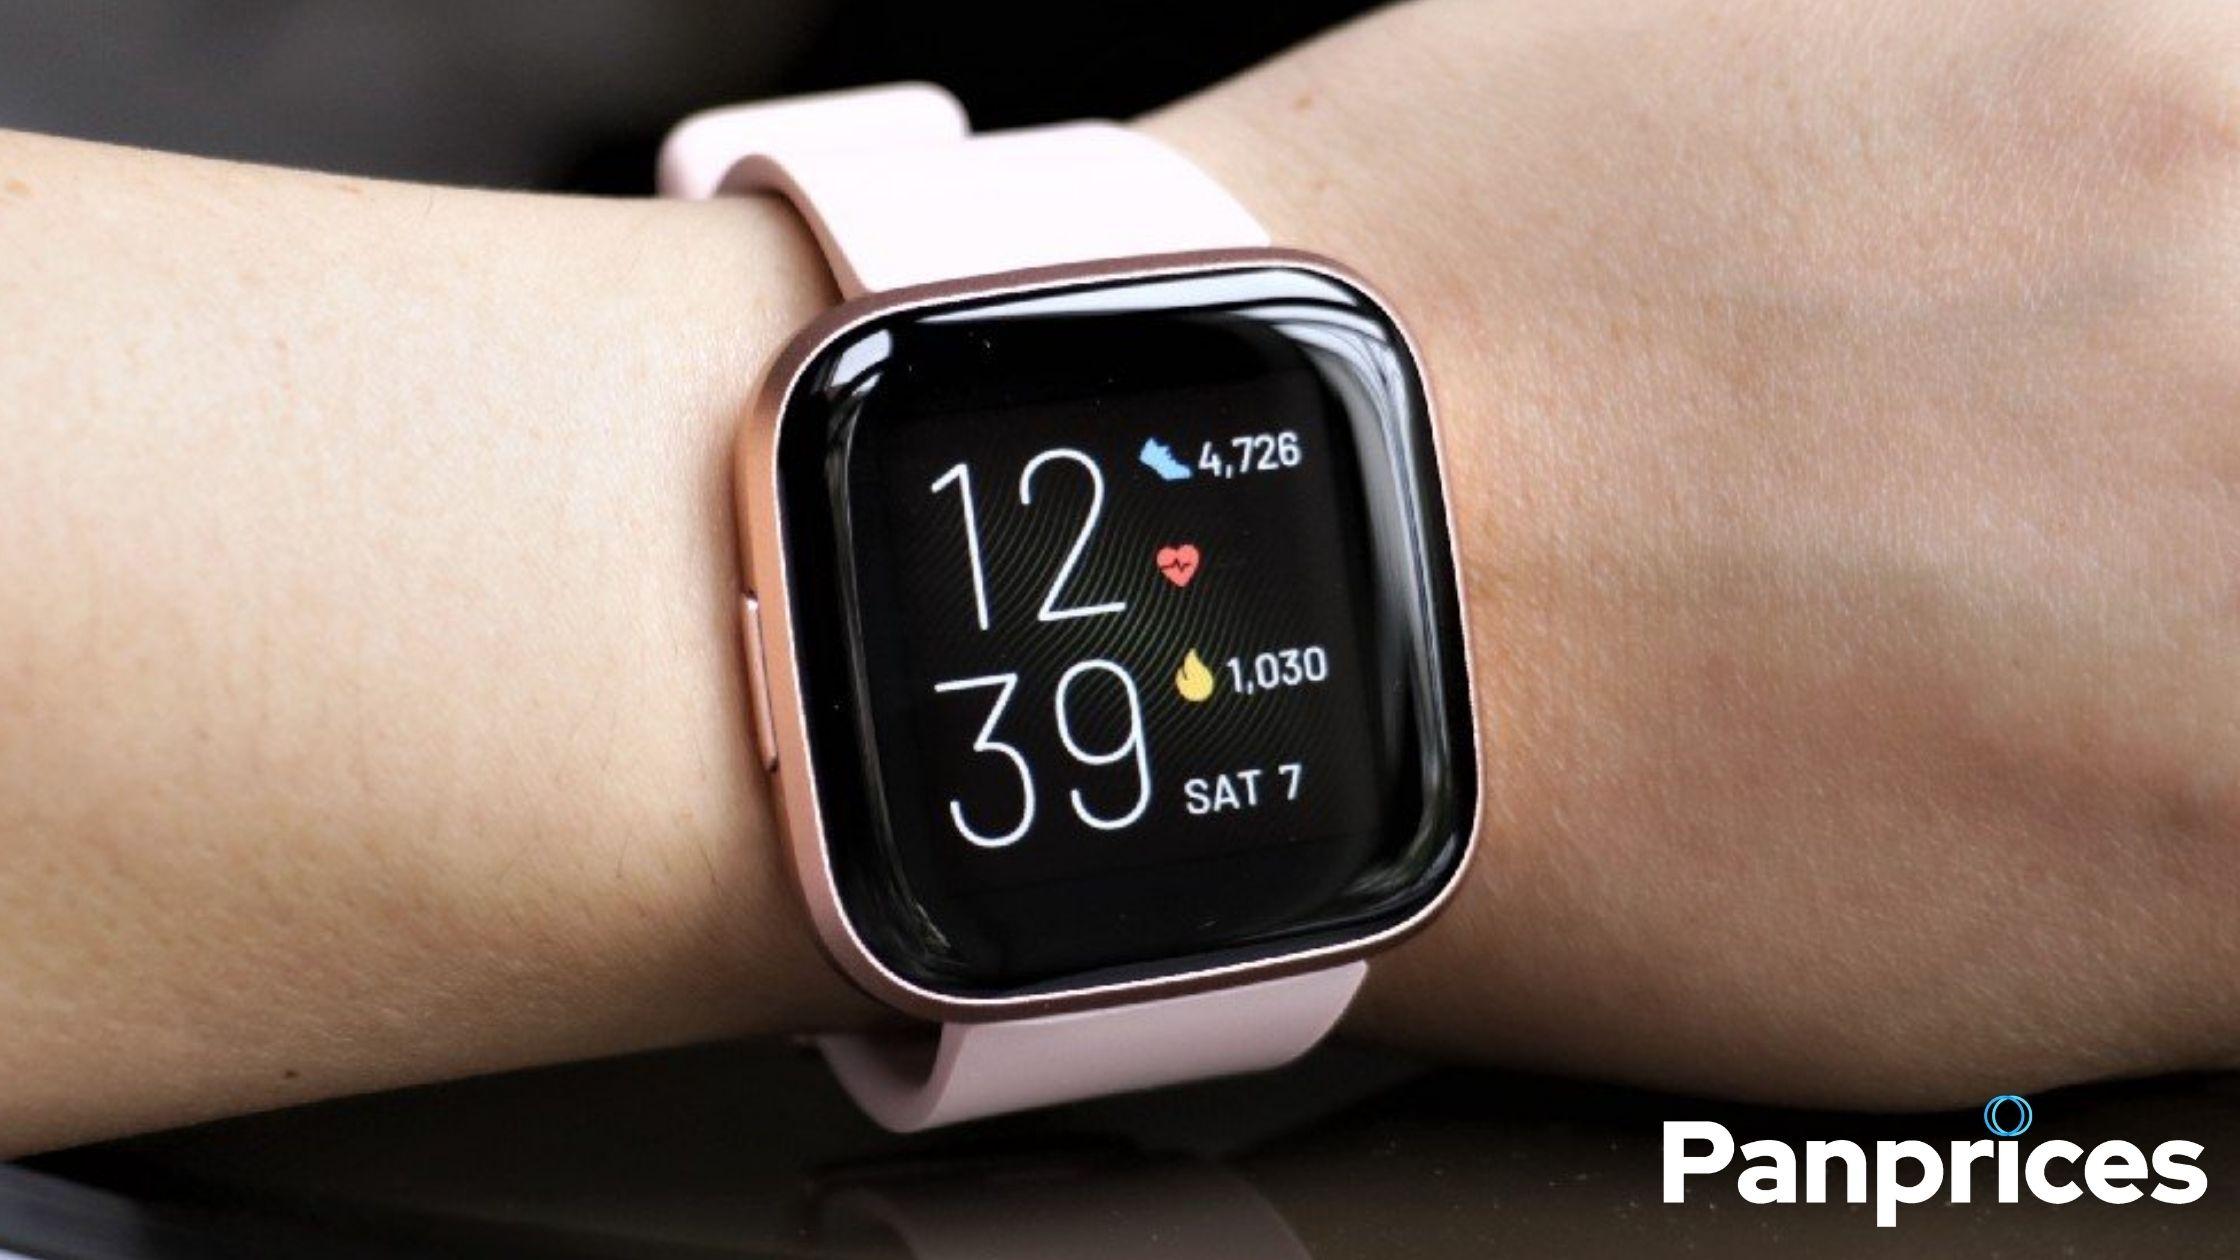 Product of the Week: Fitbit Versa 2